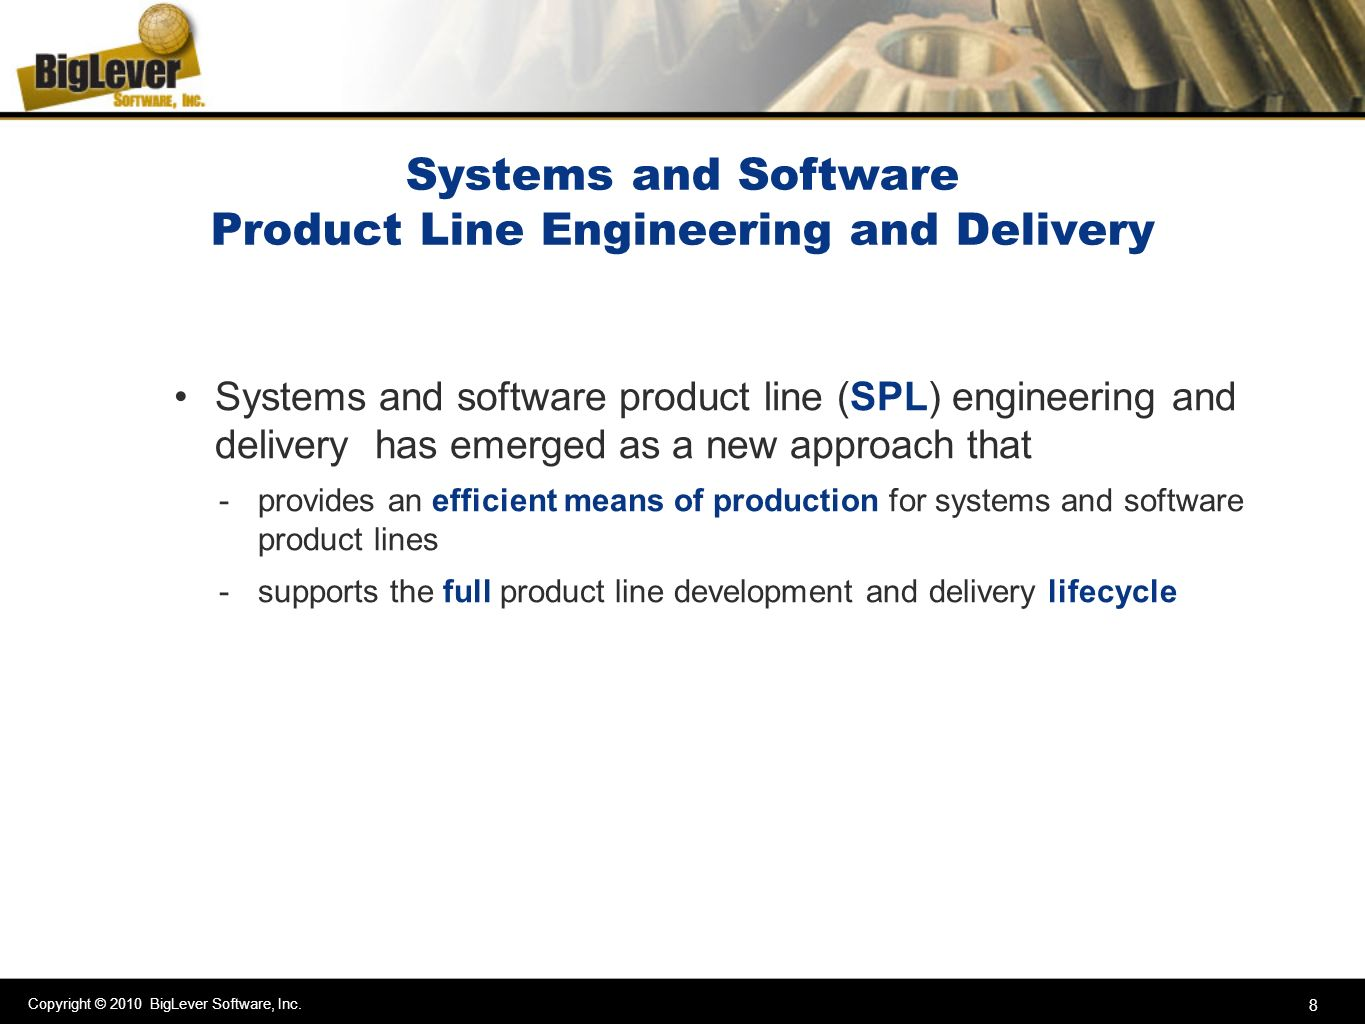 Systems and Software Product Line Engineering and Delivery